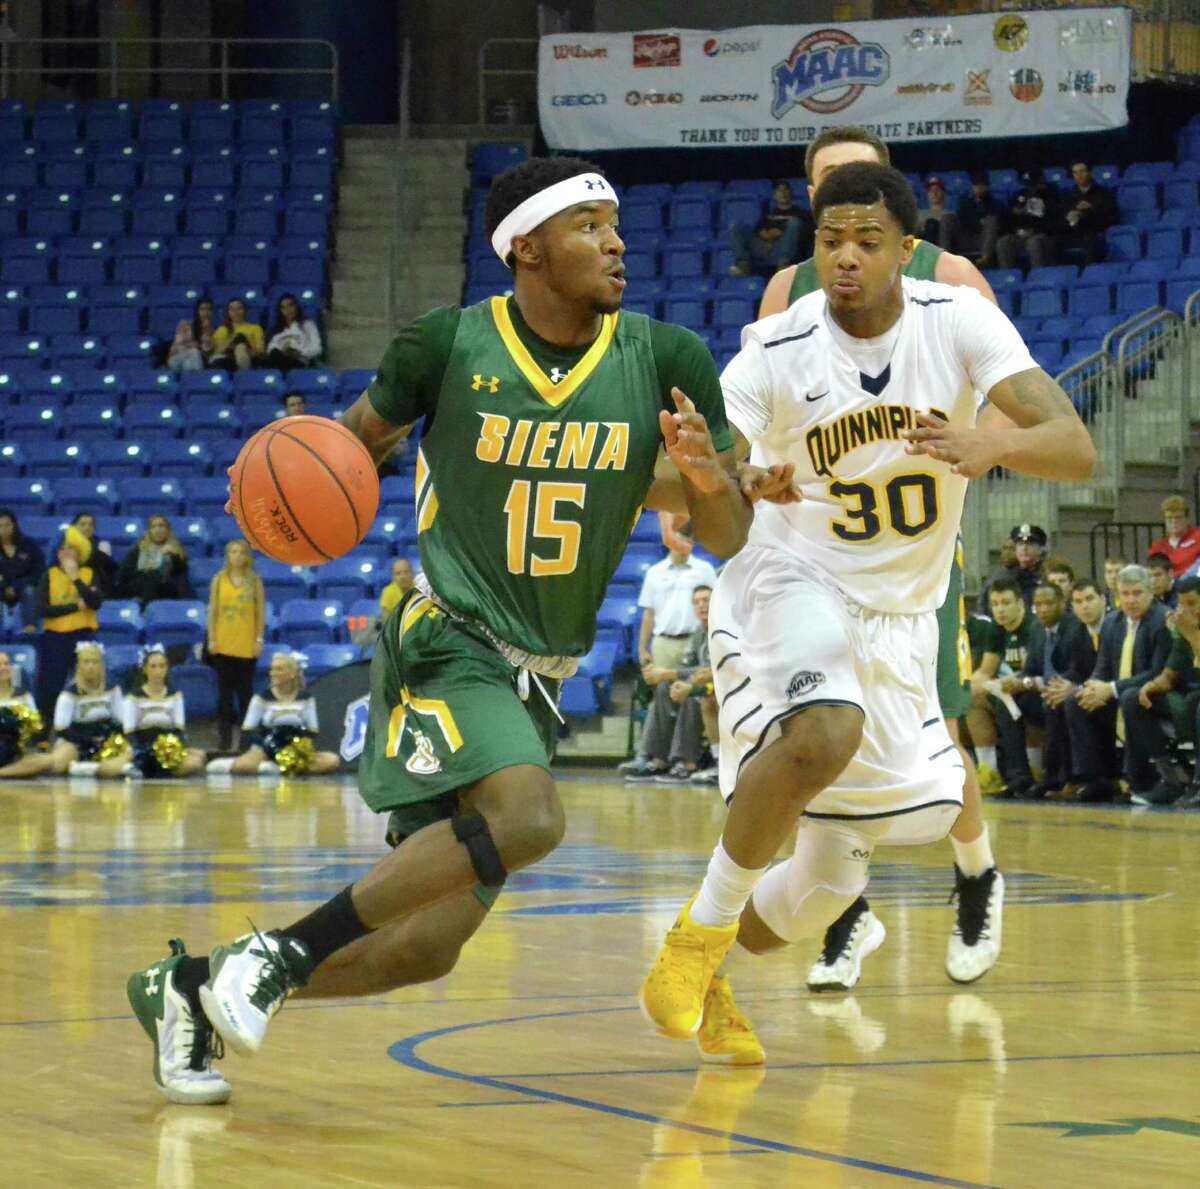 Siena's Nico Clareth drives to the hoop in the Saints' 64-52 win over Quinnipiac at the TD Bank Sports Center. (Nick Solari/Special to the Times Union)